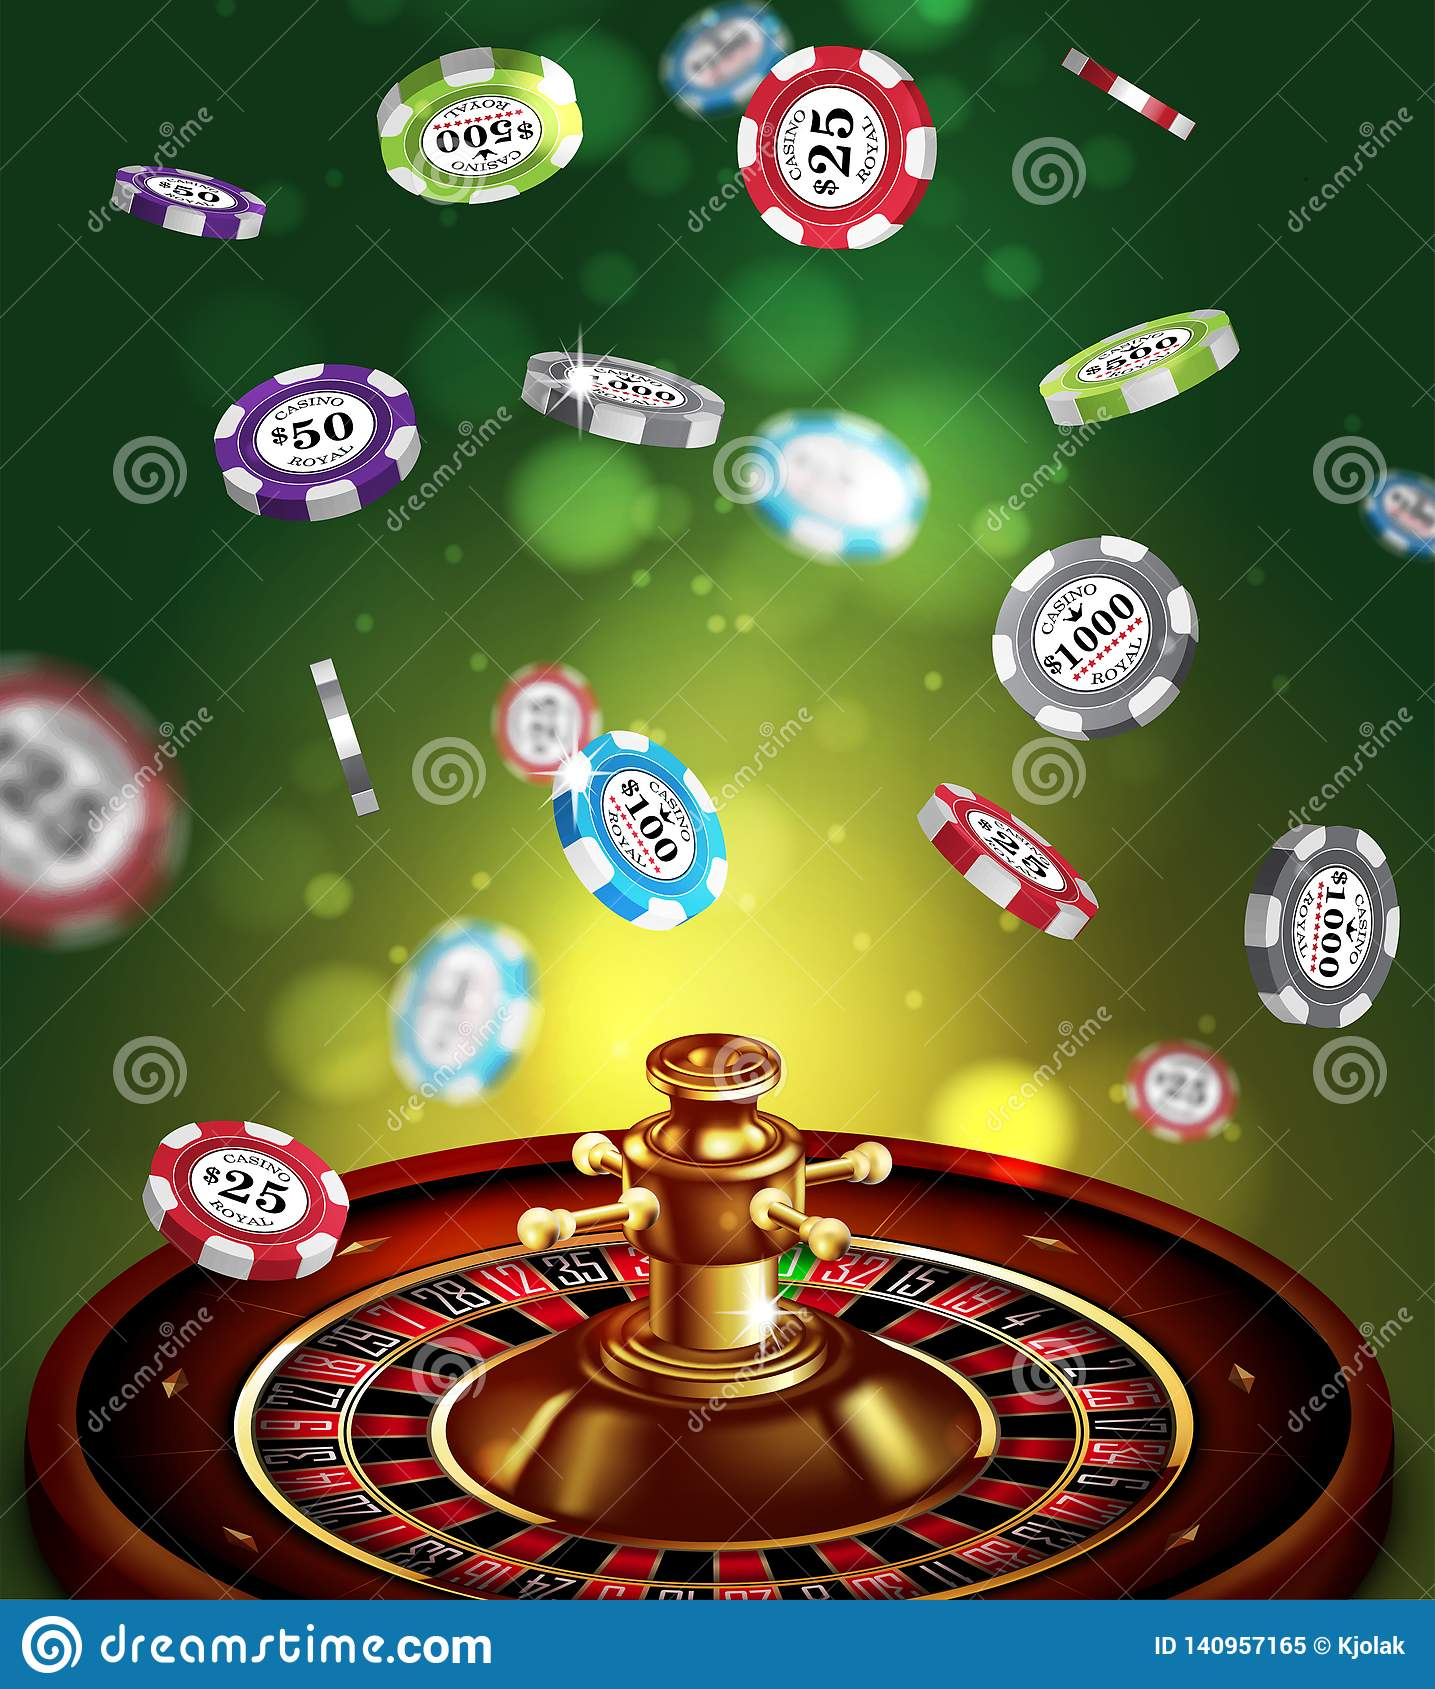 Casino advertising with roulette and elements of casino games on a green background. 3D vector. High detailed realistic